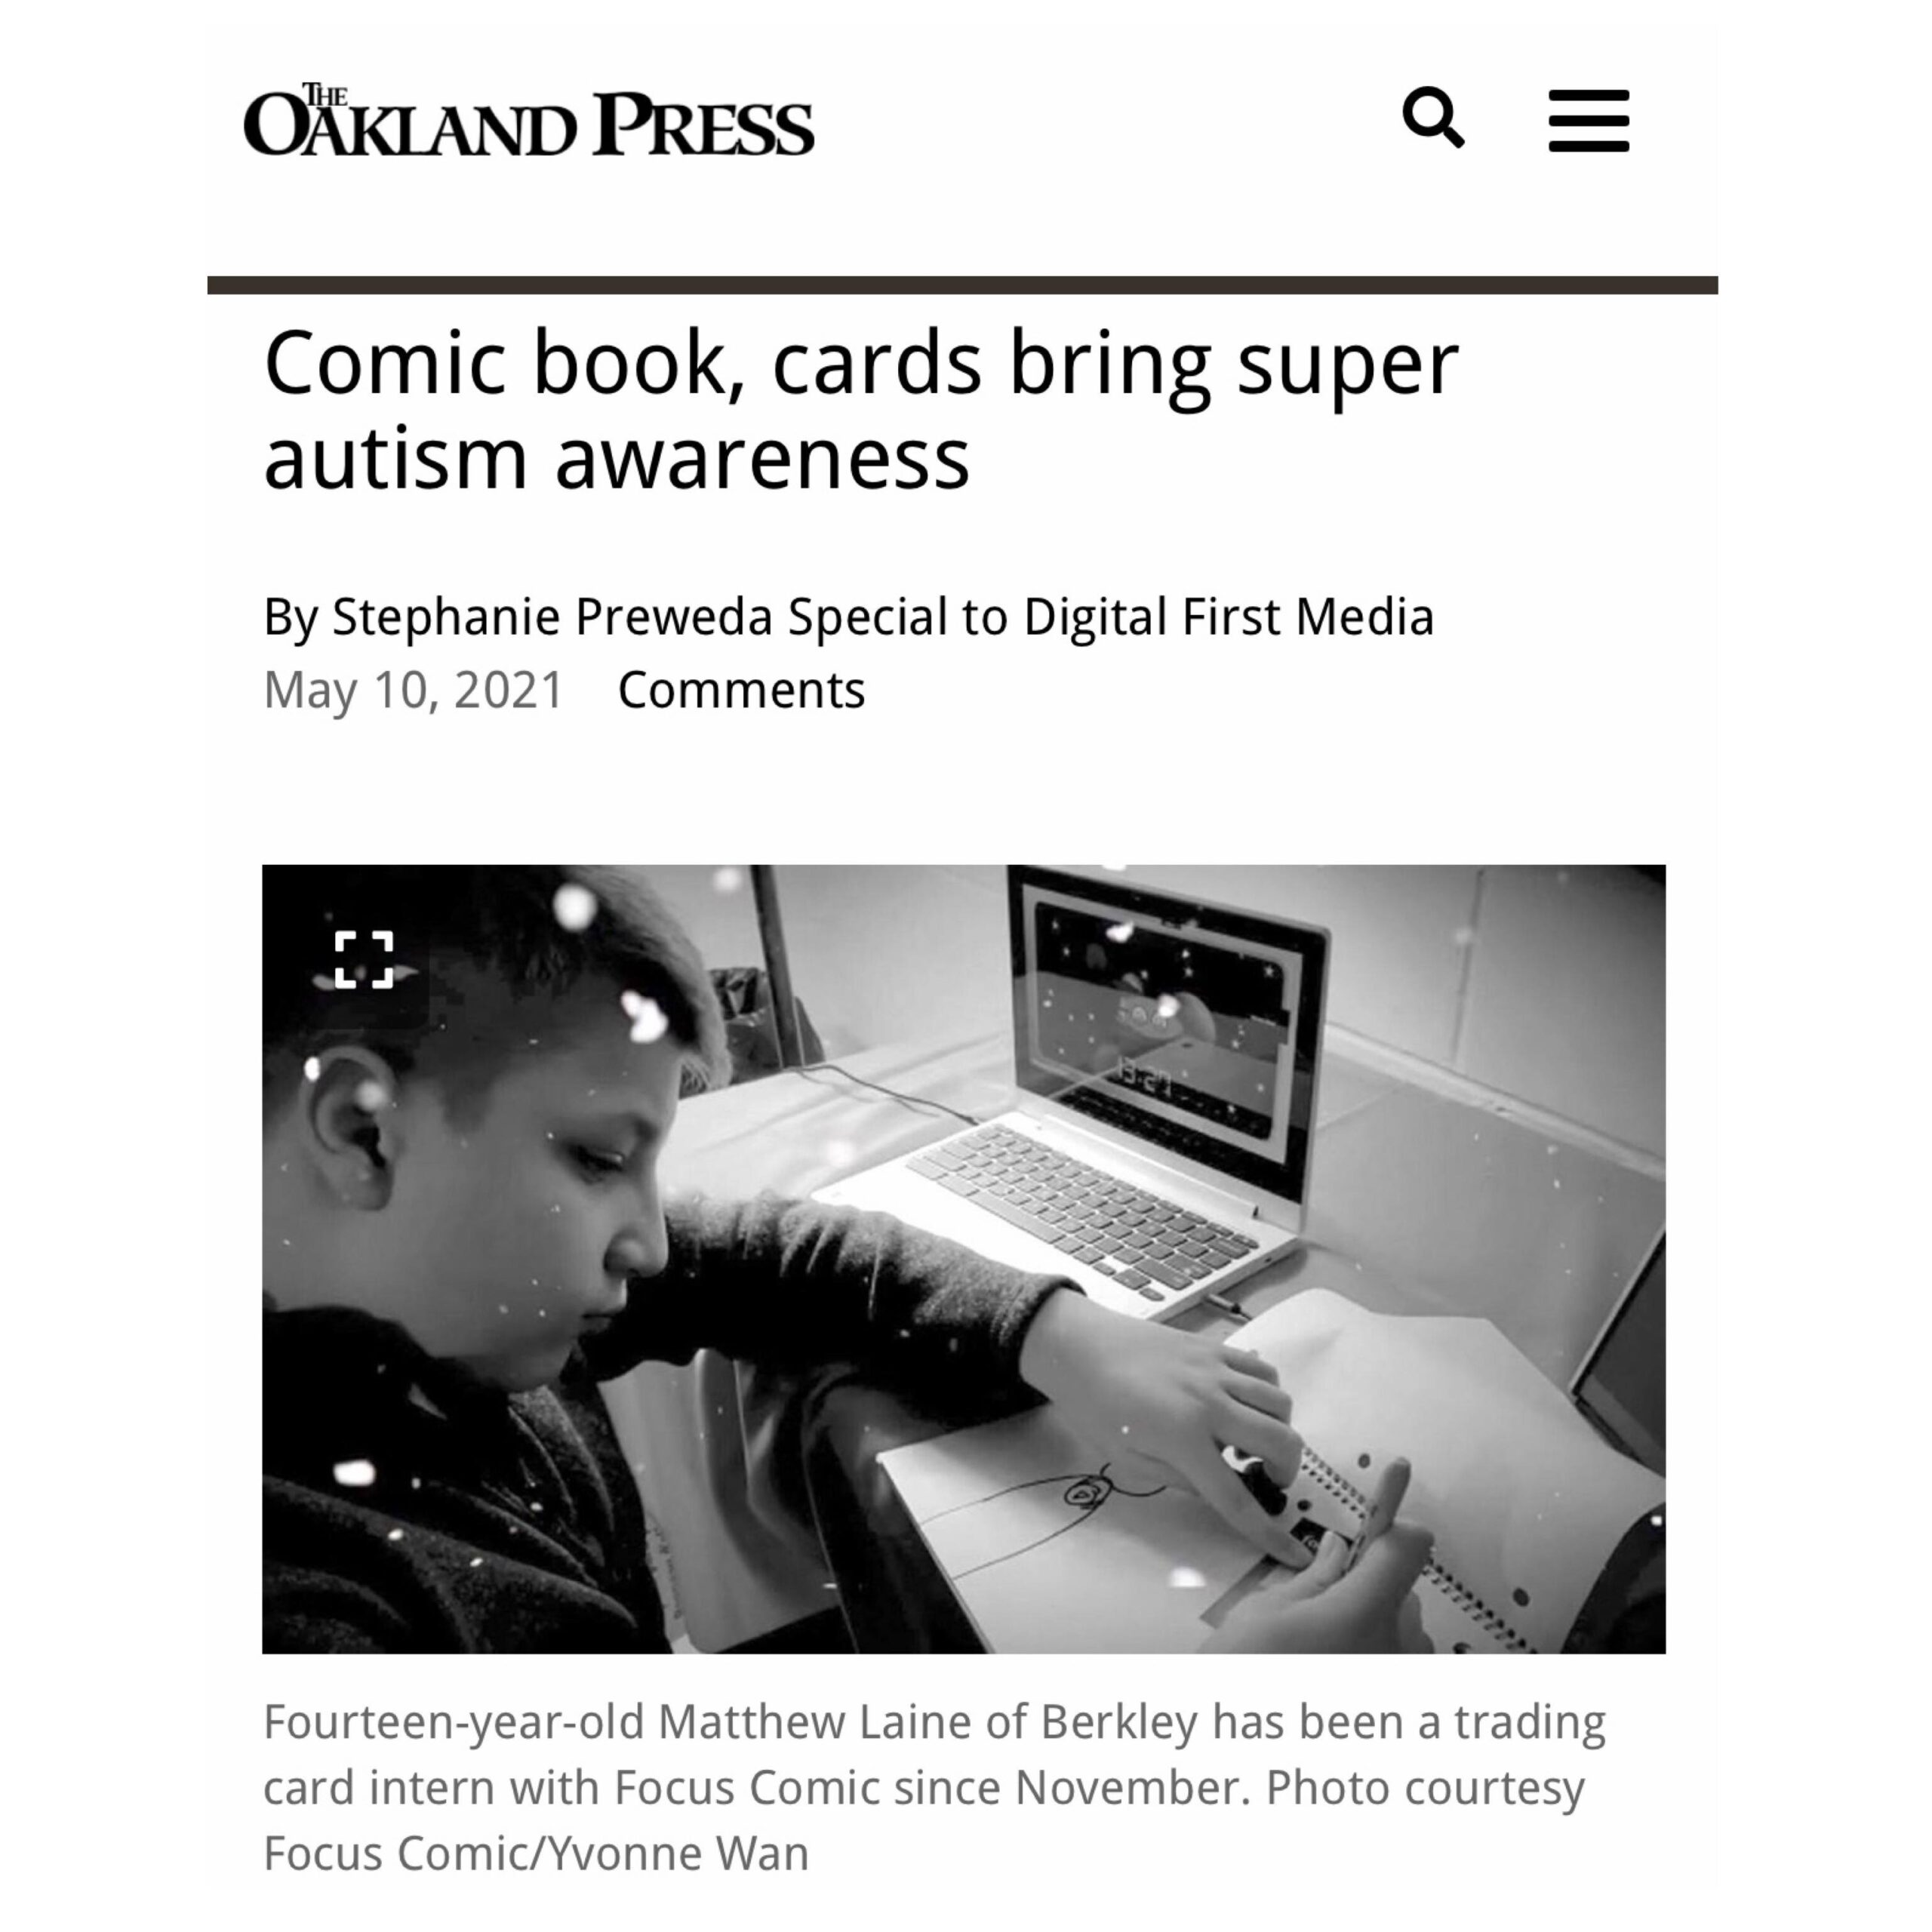 Focus Comic featured in the Oakland Press Newspapers